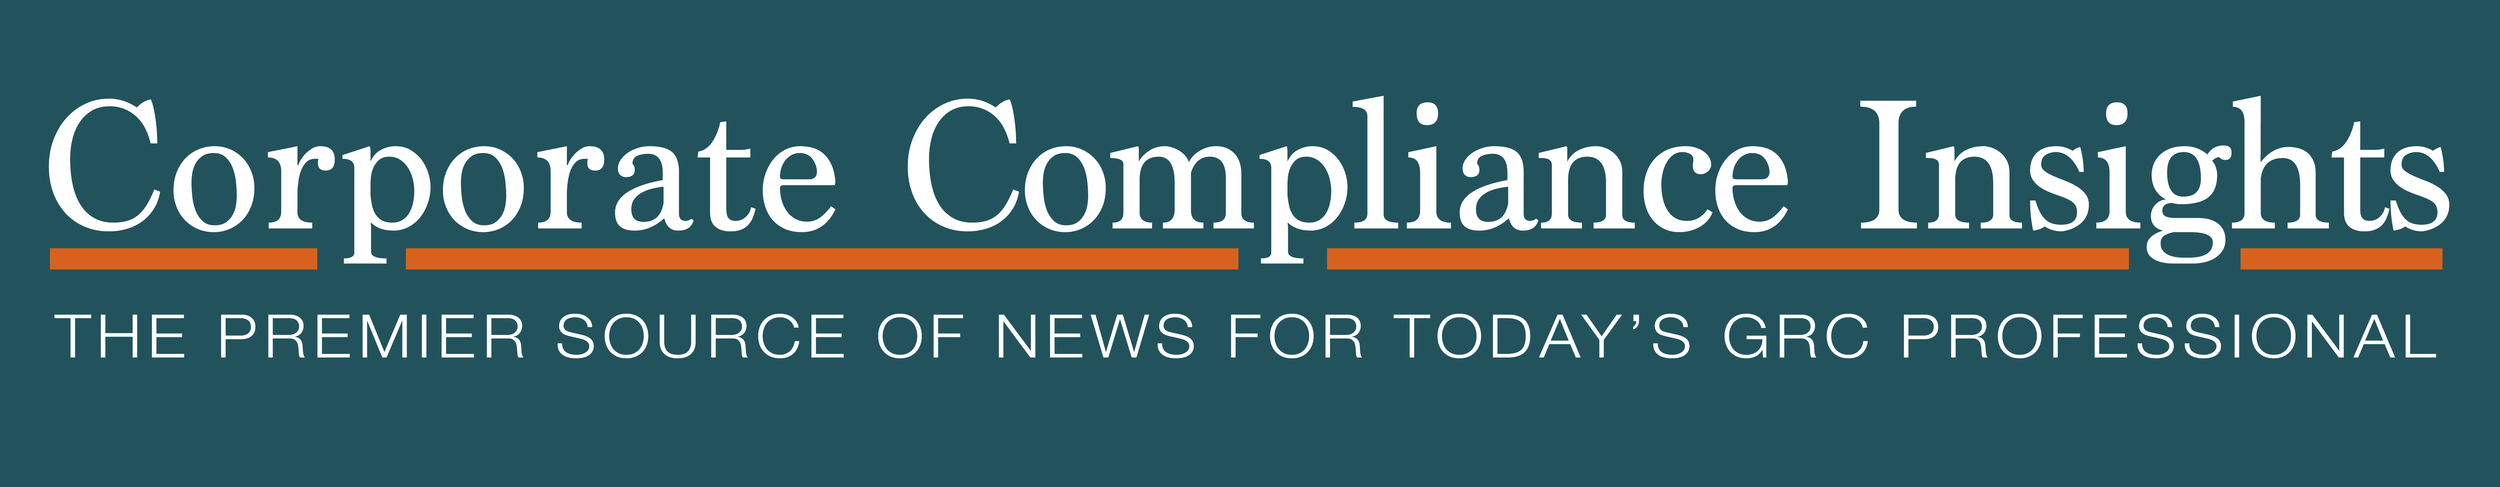 Corporate-Compliance-Insights-logo.png